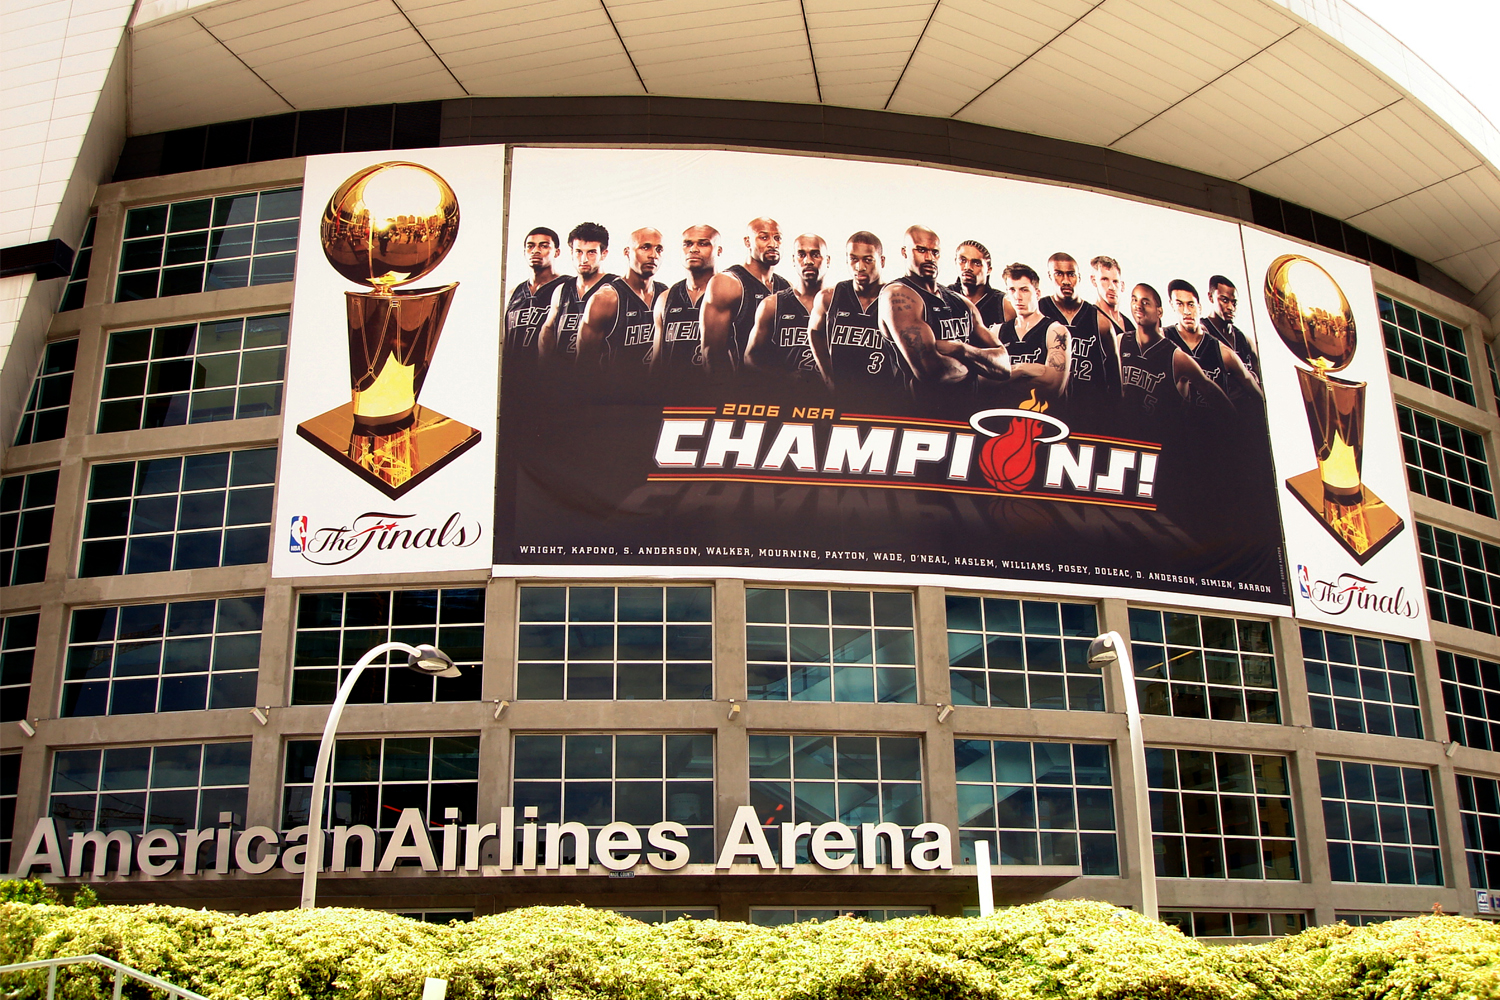 Metro Signs printed and installed the Miami Heat first NBA championship banner at the American Airlines Arena in 2006.